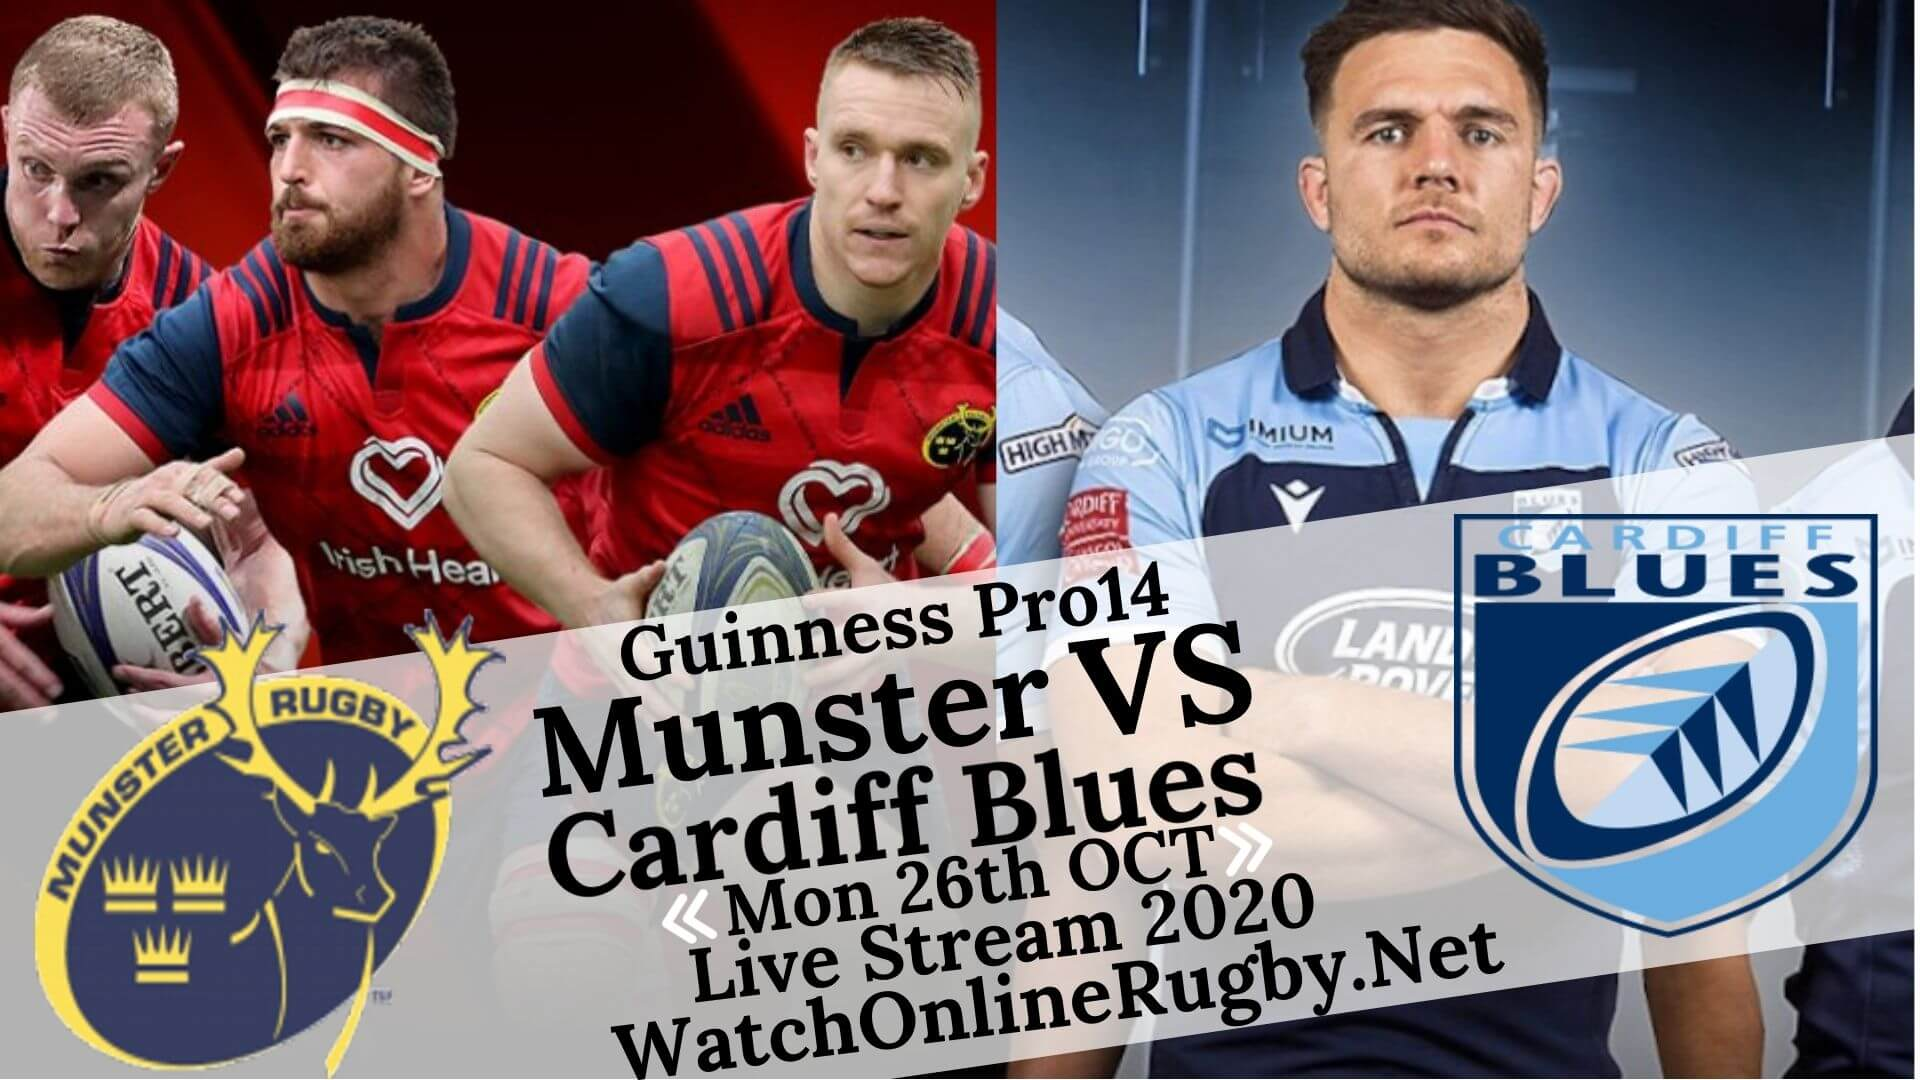 live-cardiff-blues-vs-munster-streaming